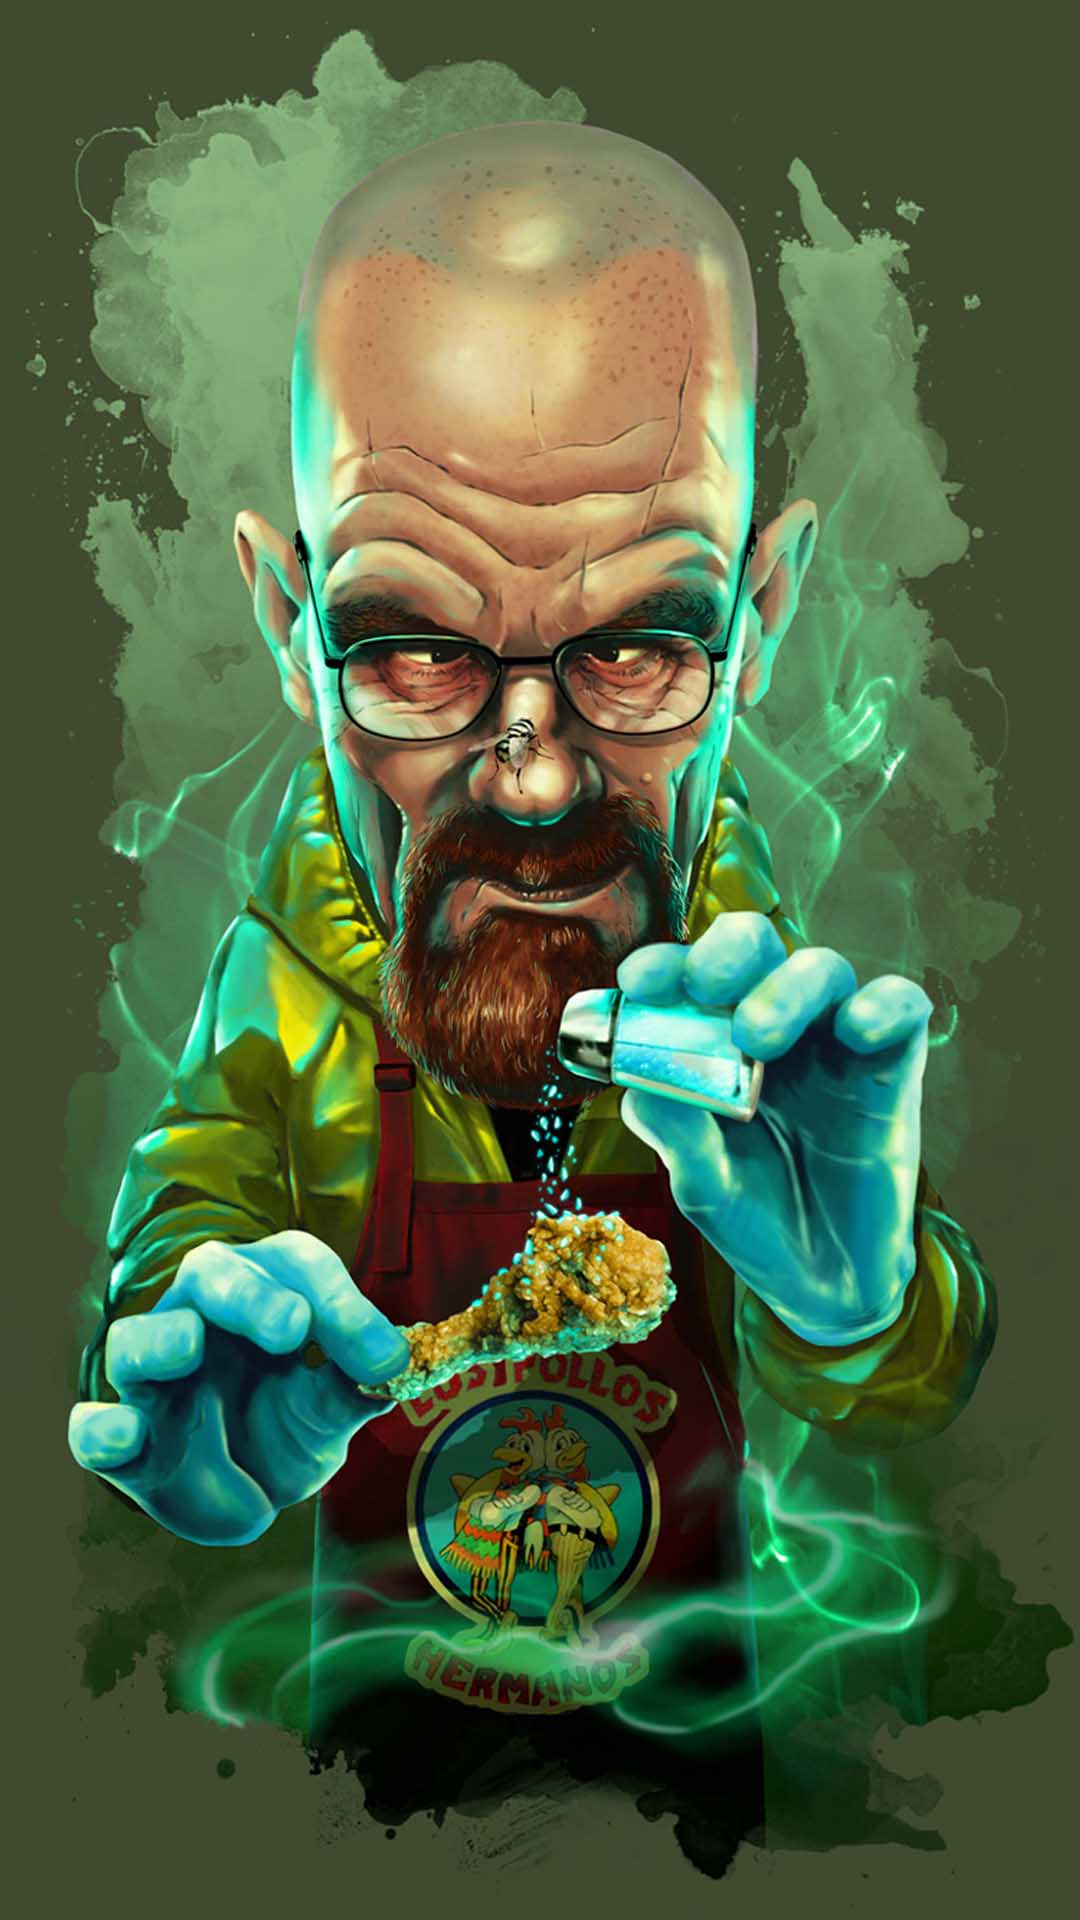 iPhone wallpaper breaking bad 3 Breaking Bad